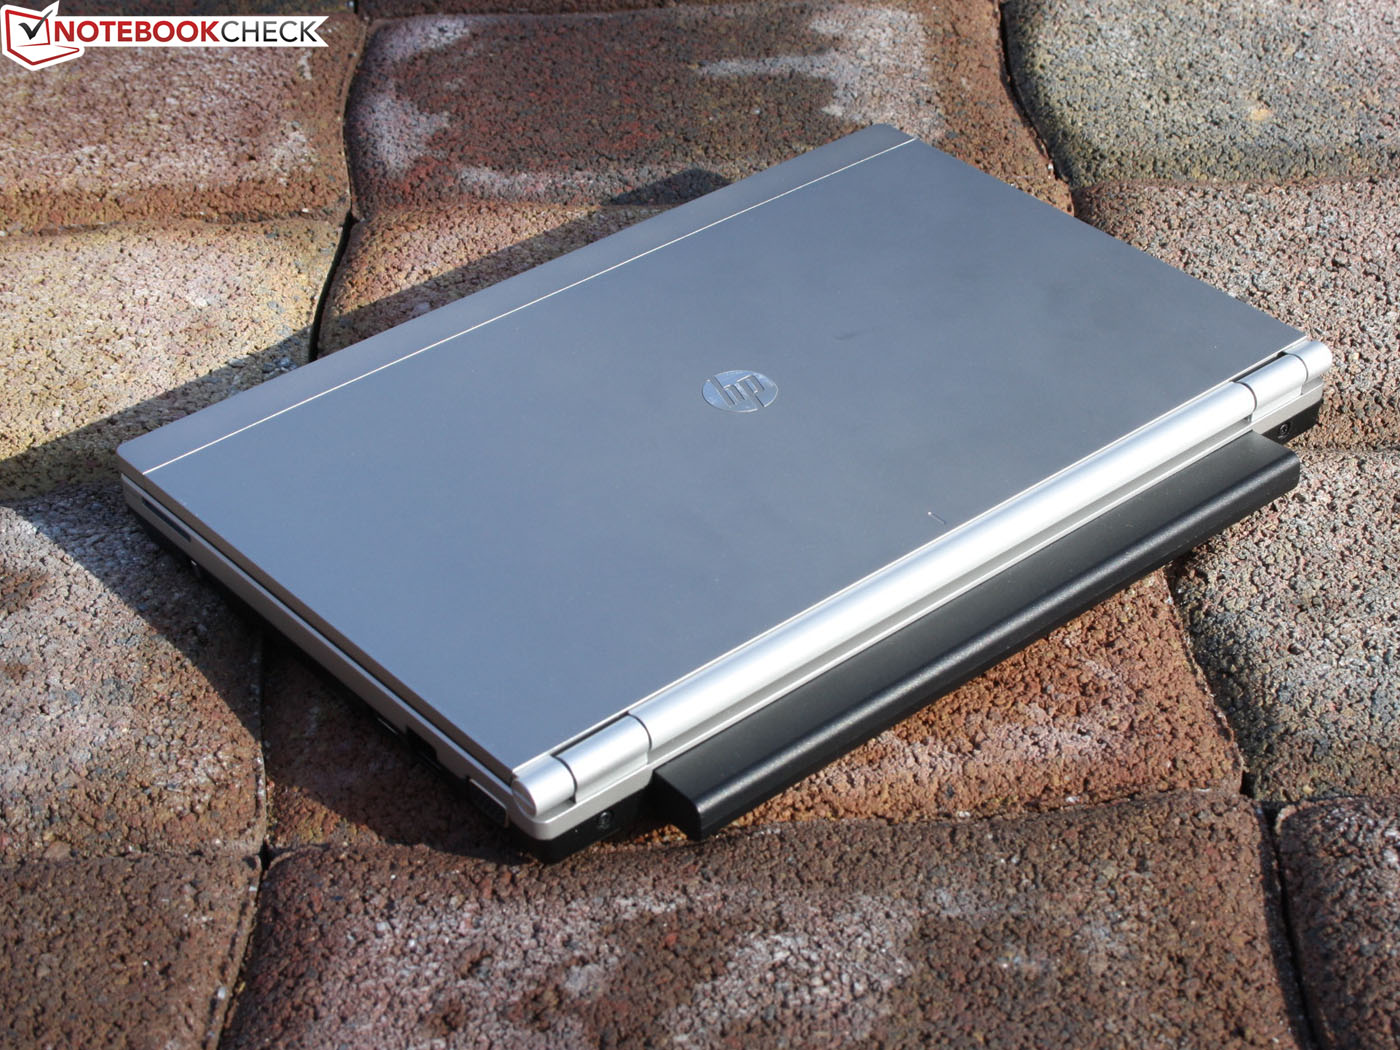 Laptop xach tay HP Elitebook 2170p gia re